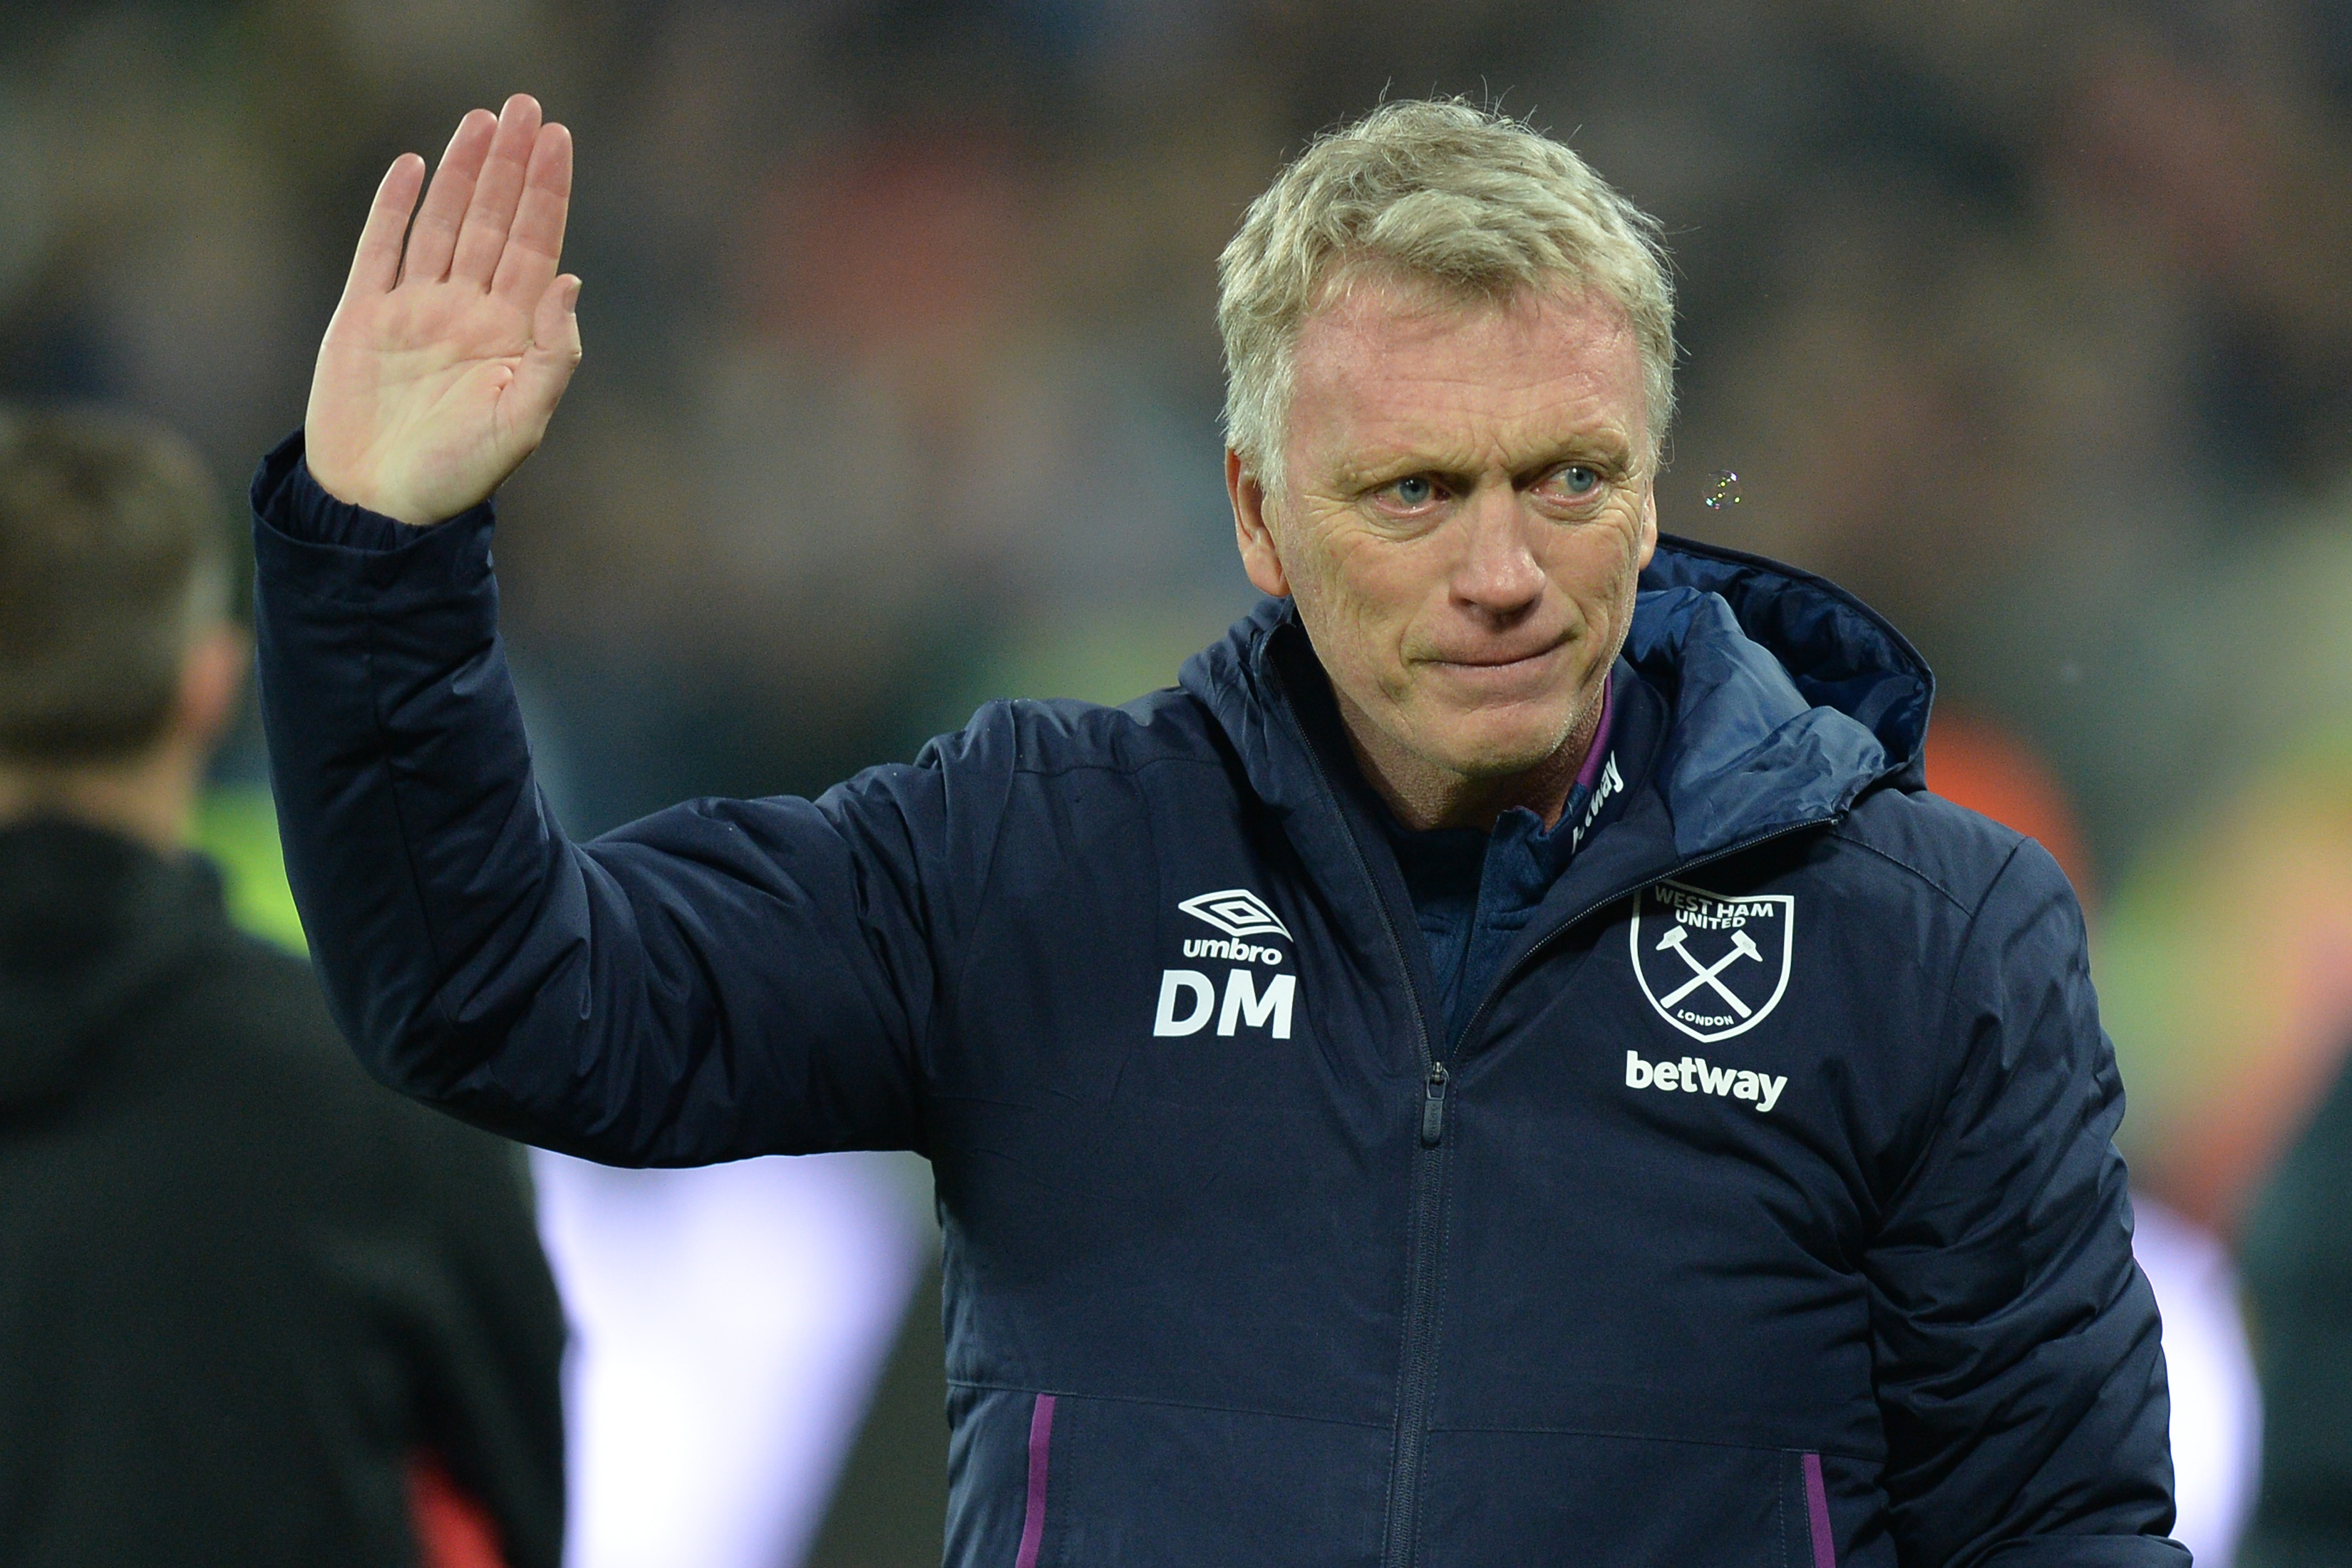 Davie Moyes bounced back in style for the Hammers on New Year's Day